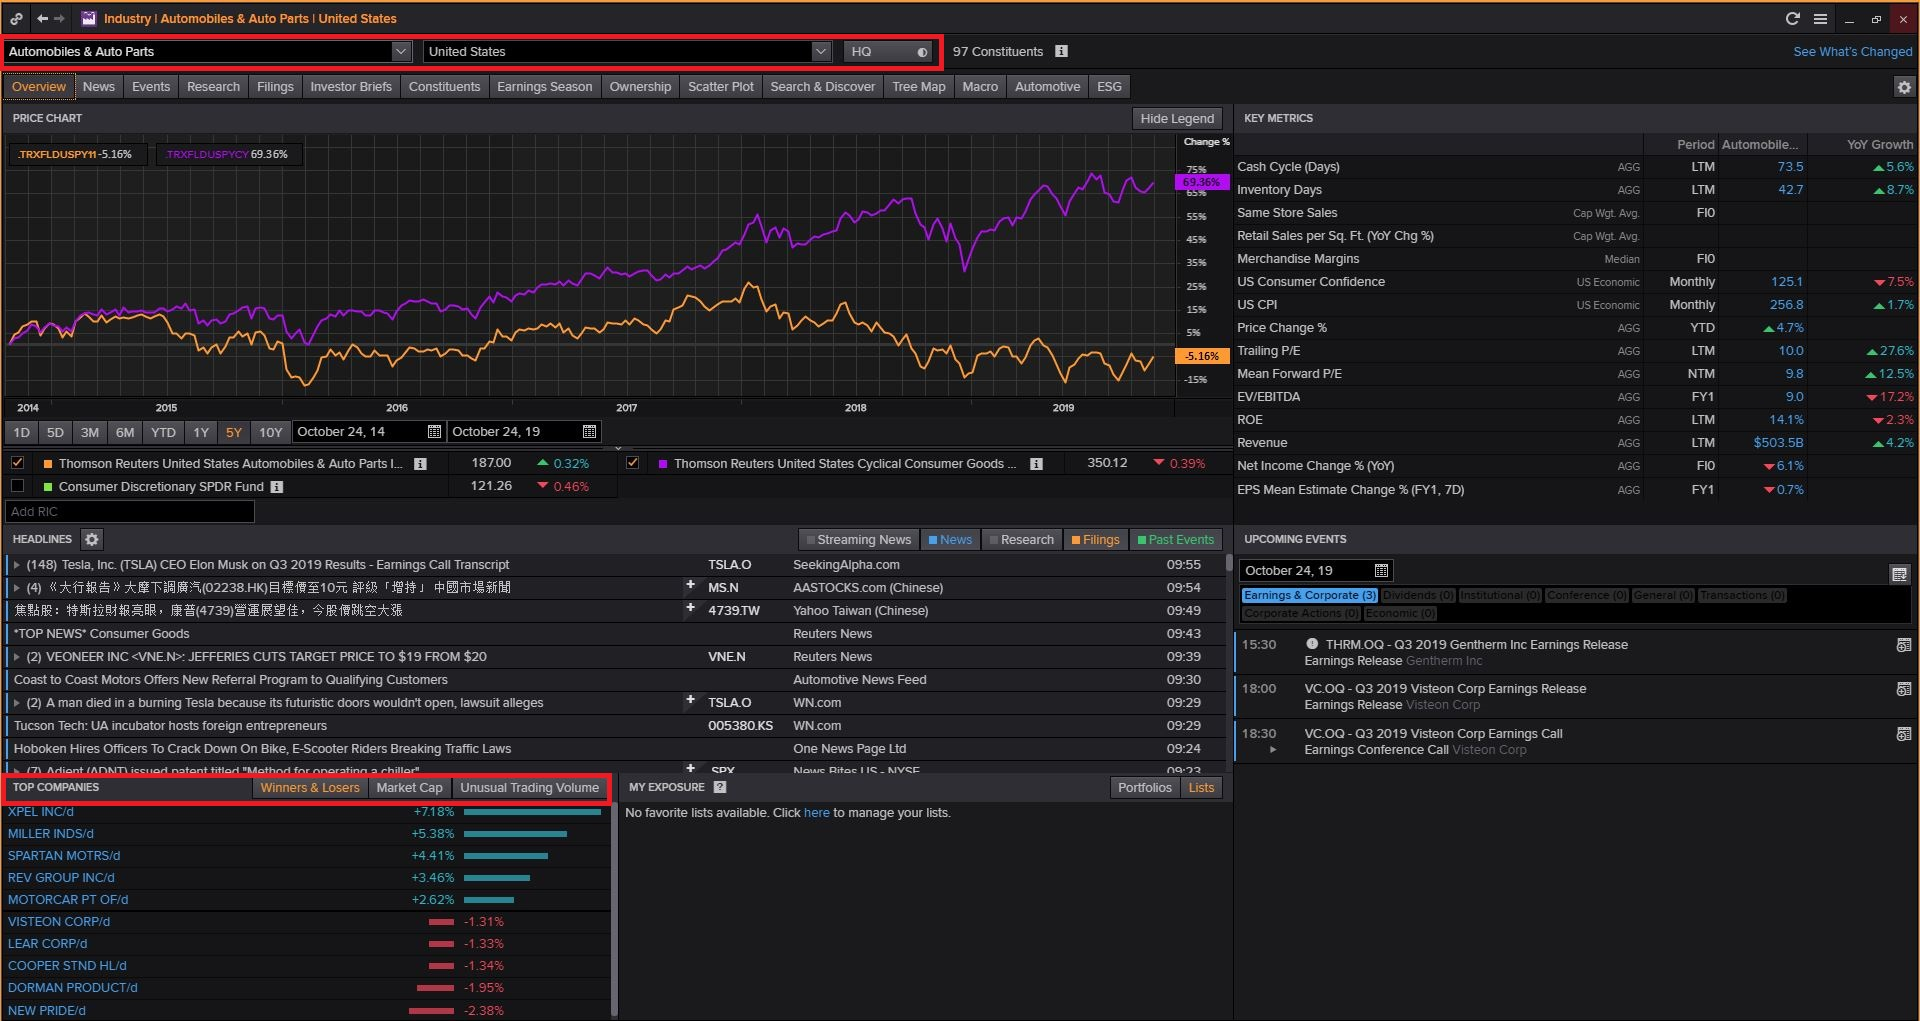 Login to Thomson Reuters Eikon (Available Only in Library) then Type INDUS and Search and Select Consumer Cyclicals and Click on Automobiles & Auto Parts and Select Country and Click on Top Companies